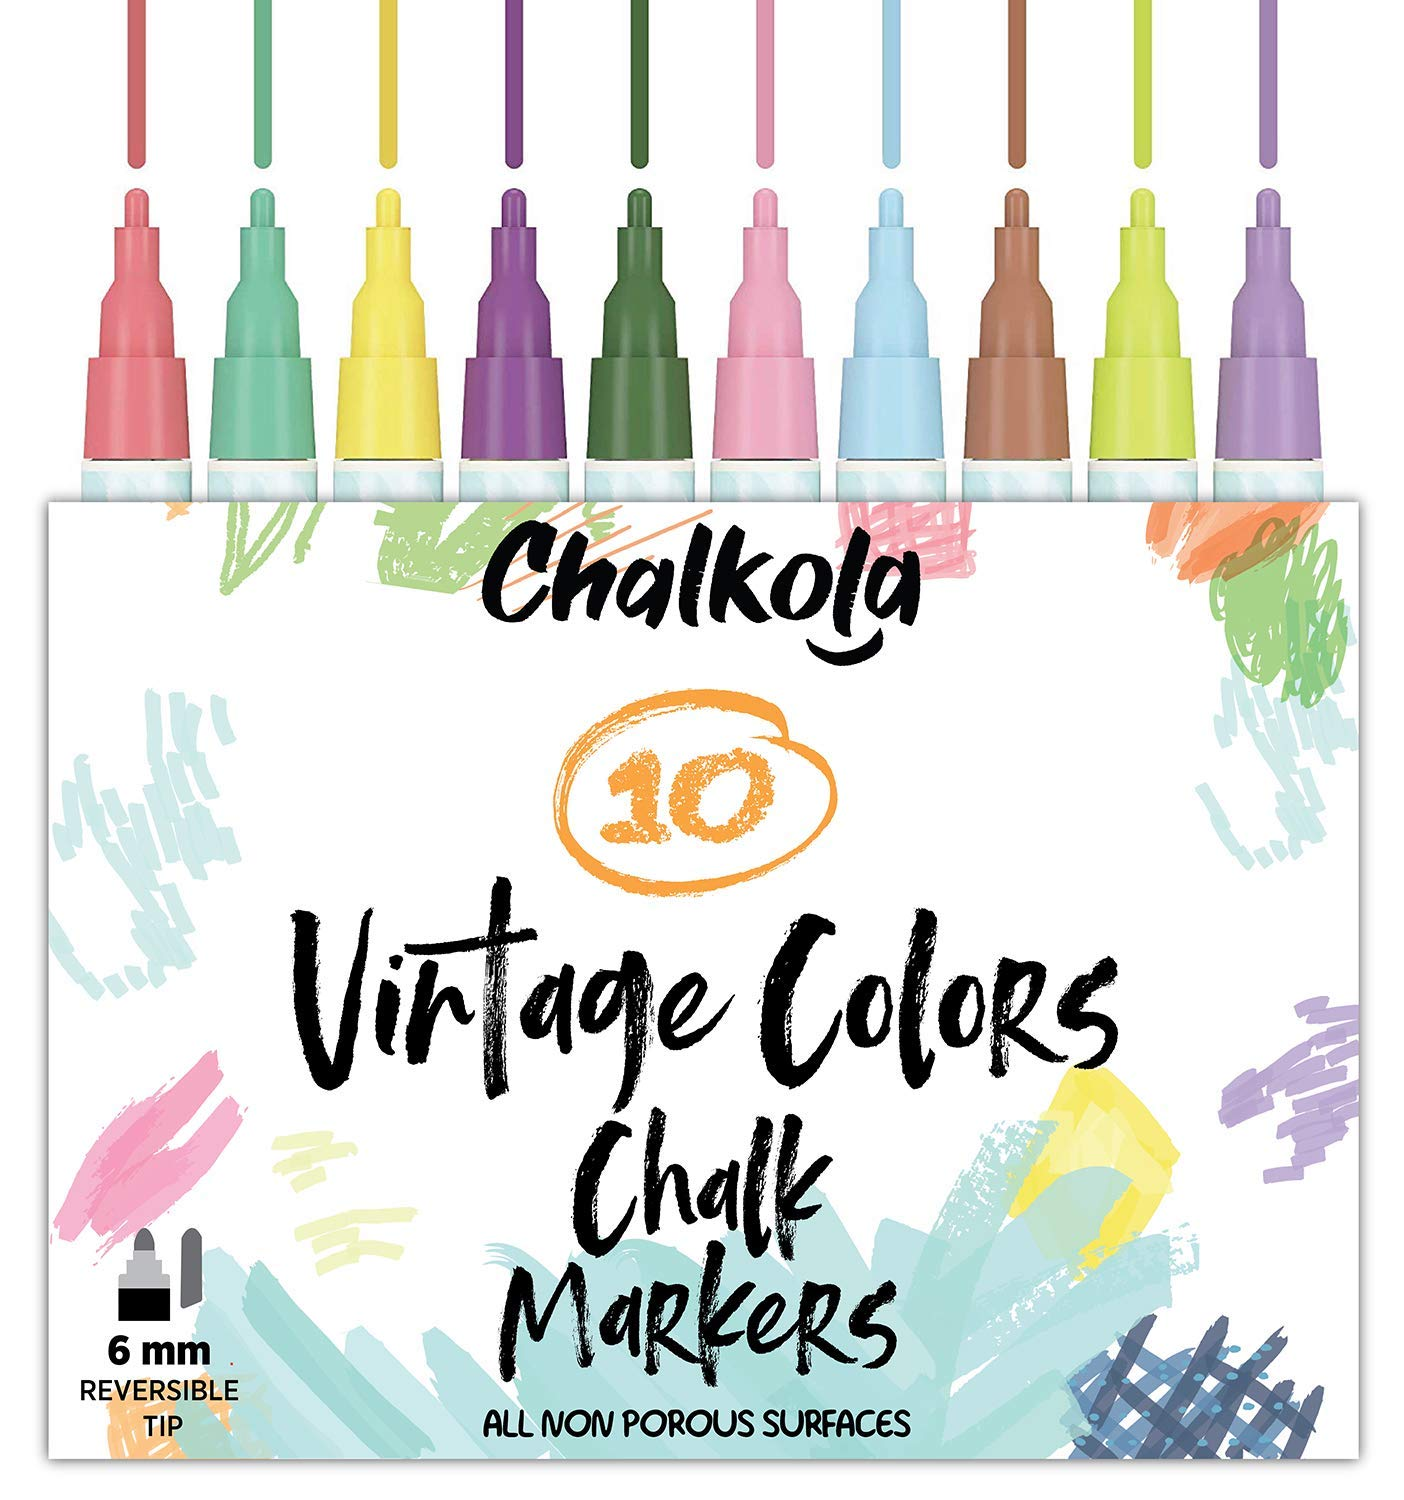 Liquid Chalk Markers for Chalkboards (10 Vintage Colors)   Kid Safe, Non-Toxic, Dustless & Erasable   6mm Reversible Bold & Chisel Nib by Chalkola